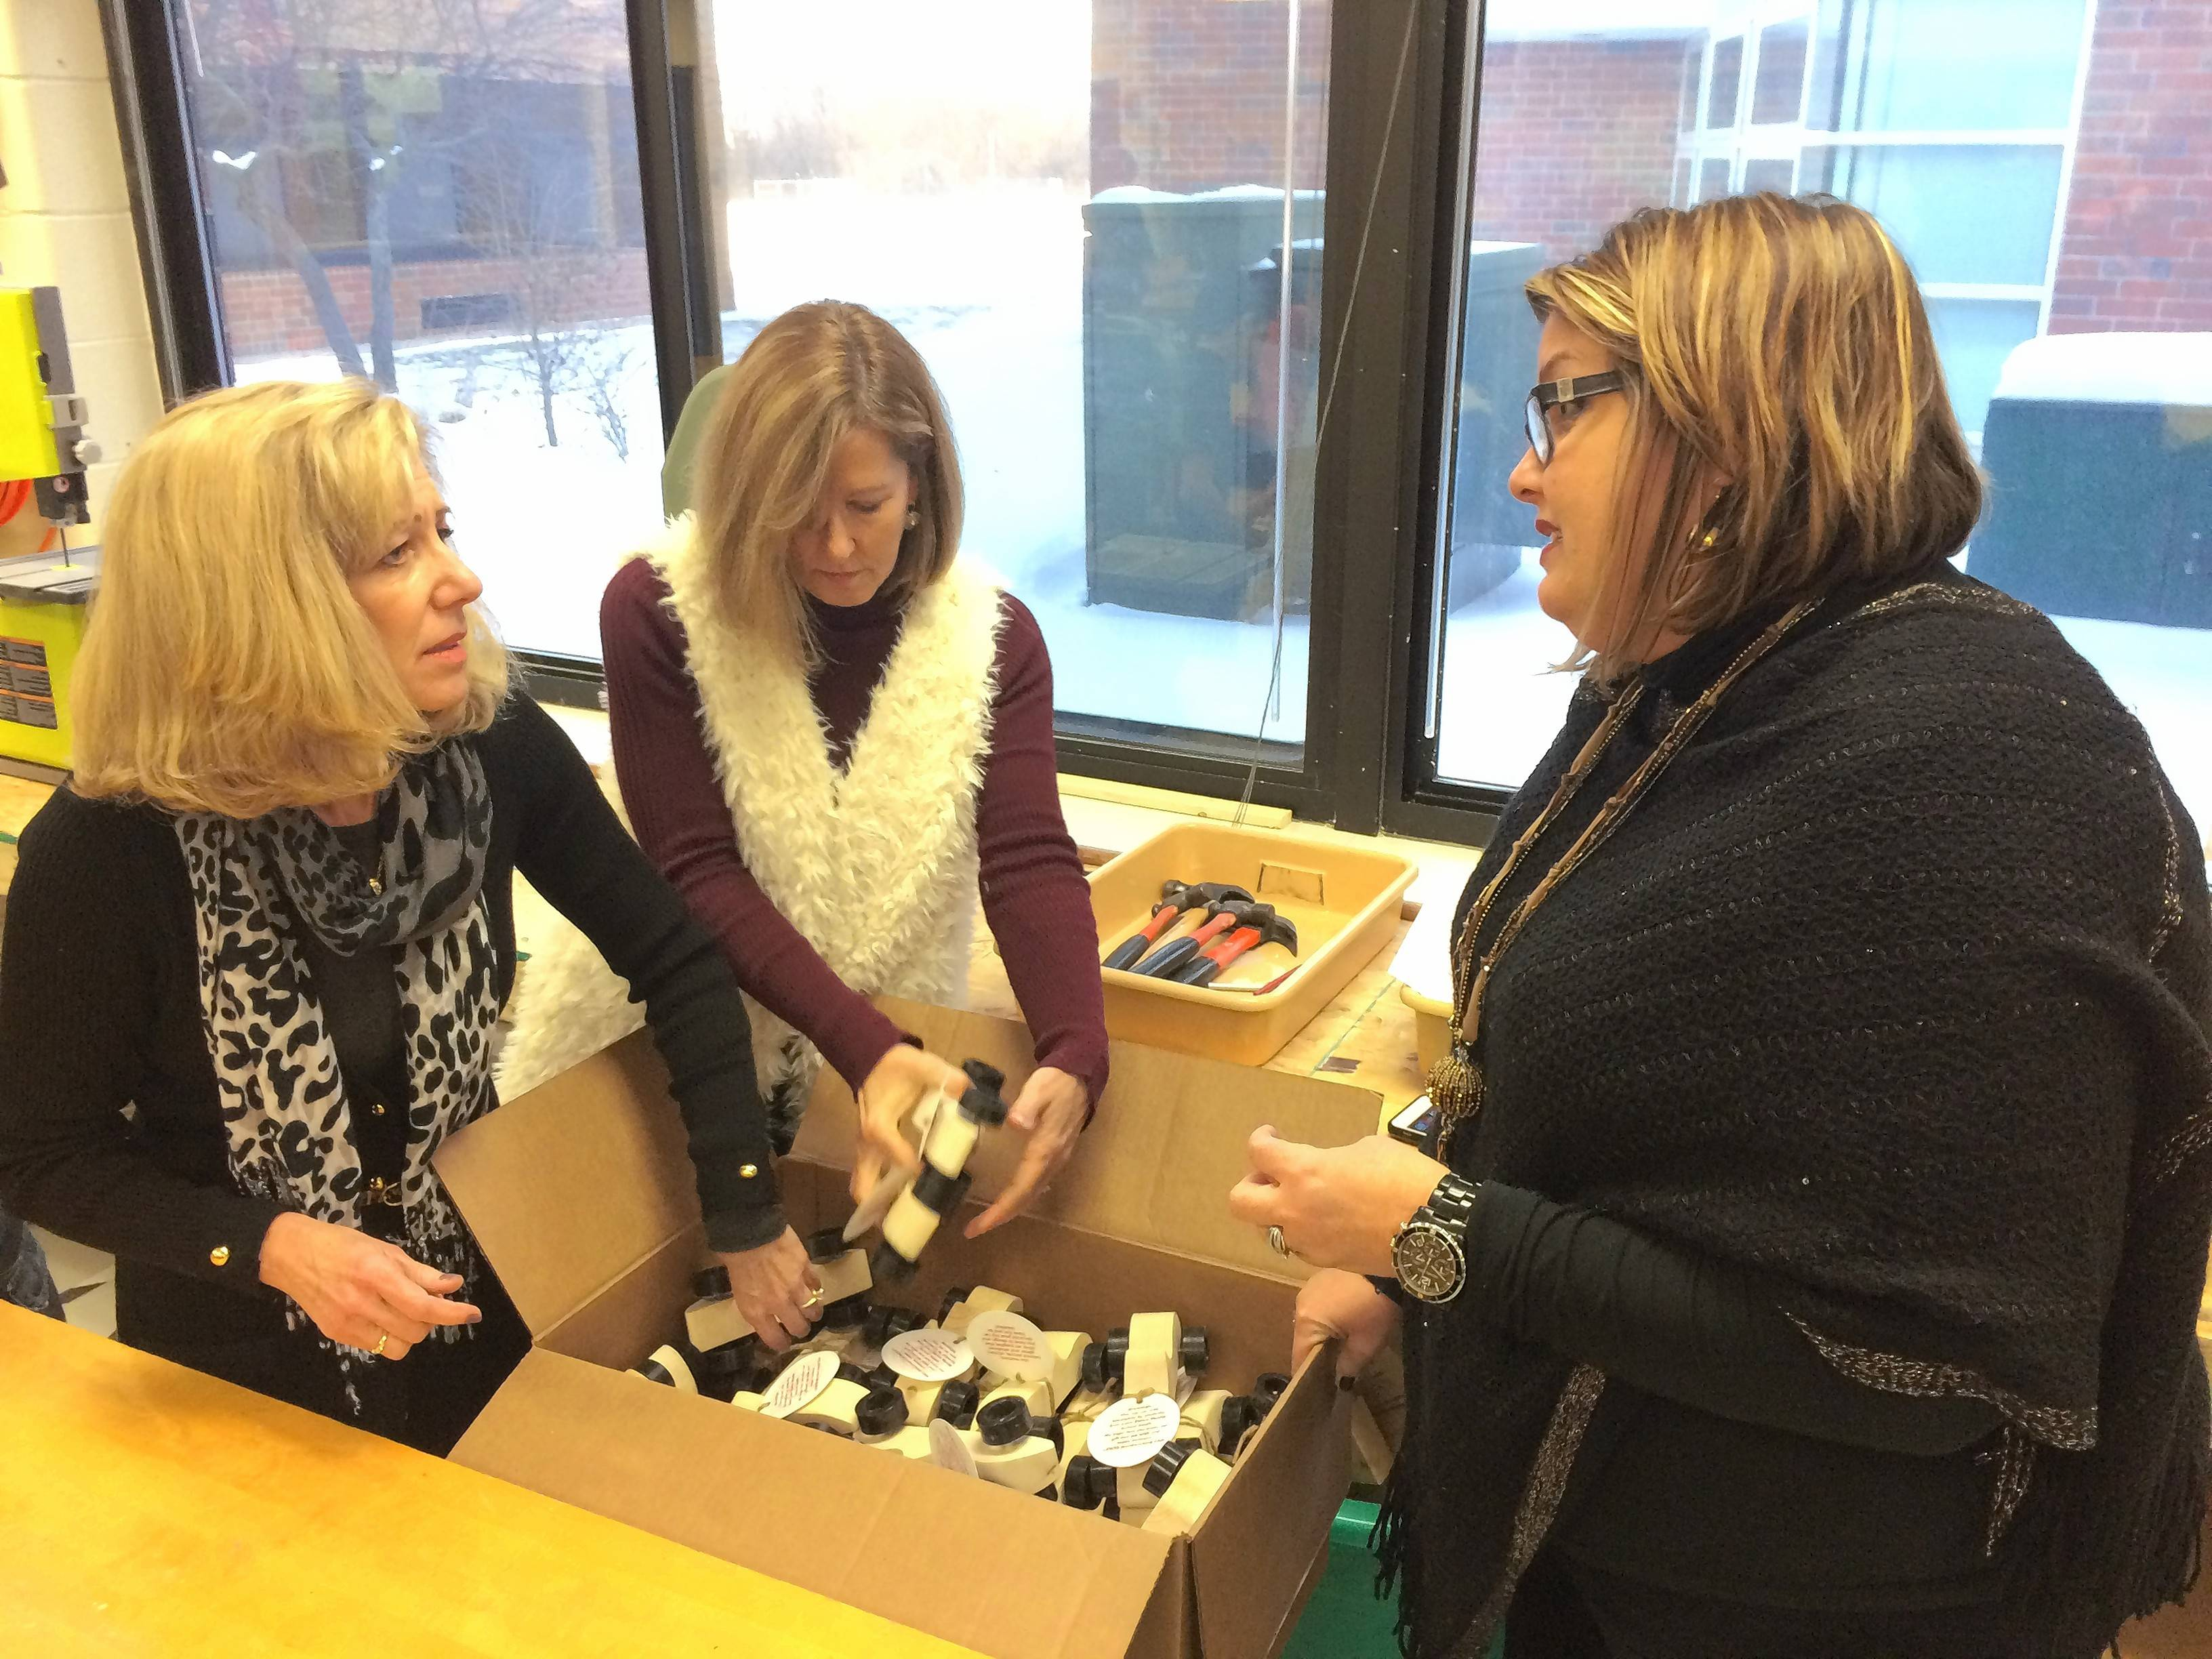 From left, Susan Passaglia, Chris Geimer and Laurie Wilhoit of Caring Women's Connection of Hawthorn Woods on Wednesday accepted 100 toy cars built by Lake Zurich Middle School South woodworking club members.